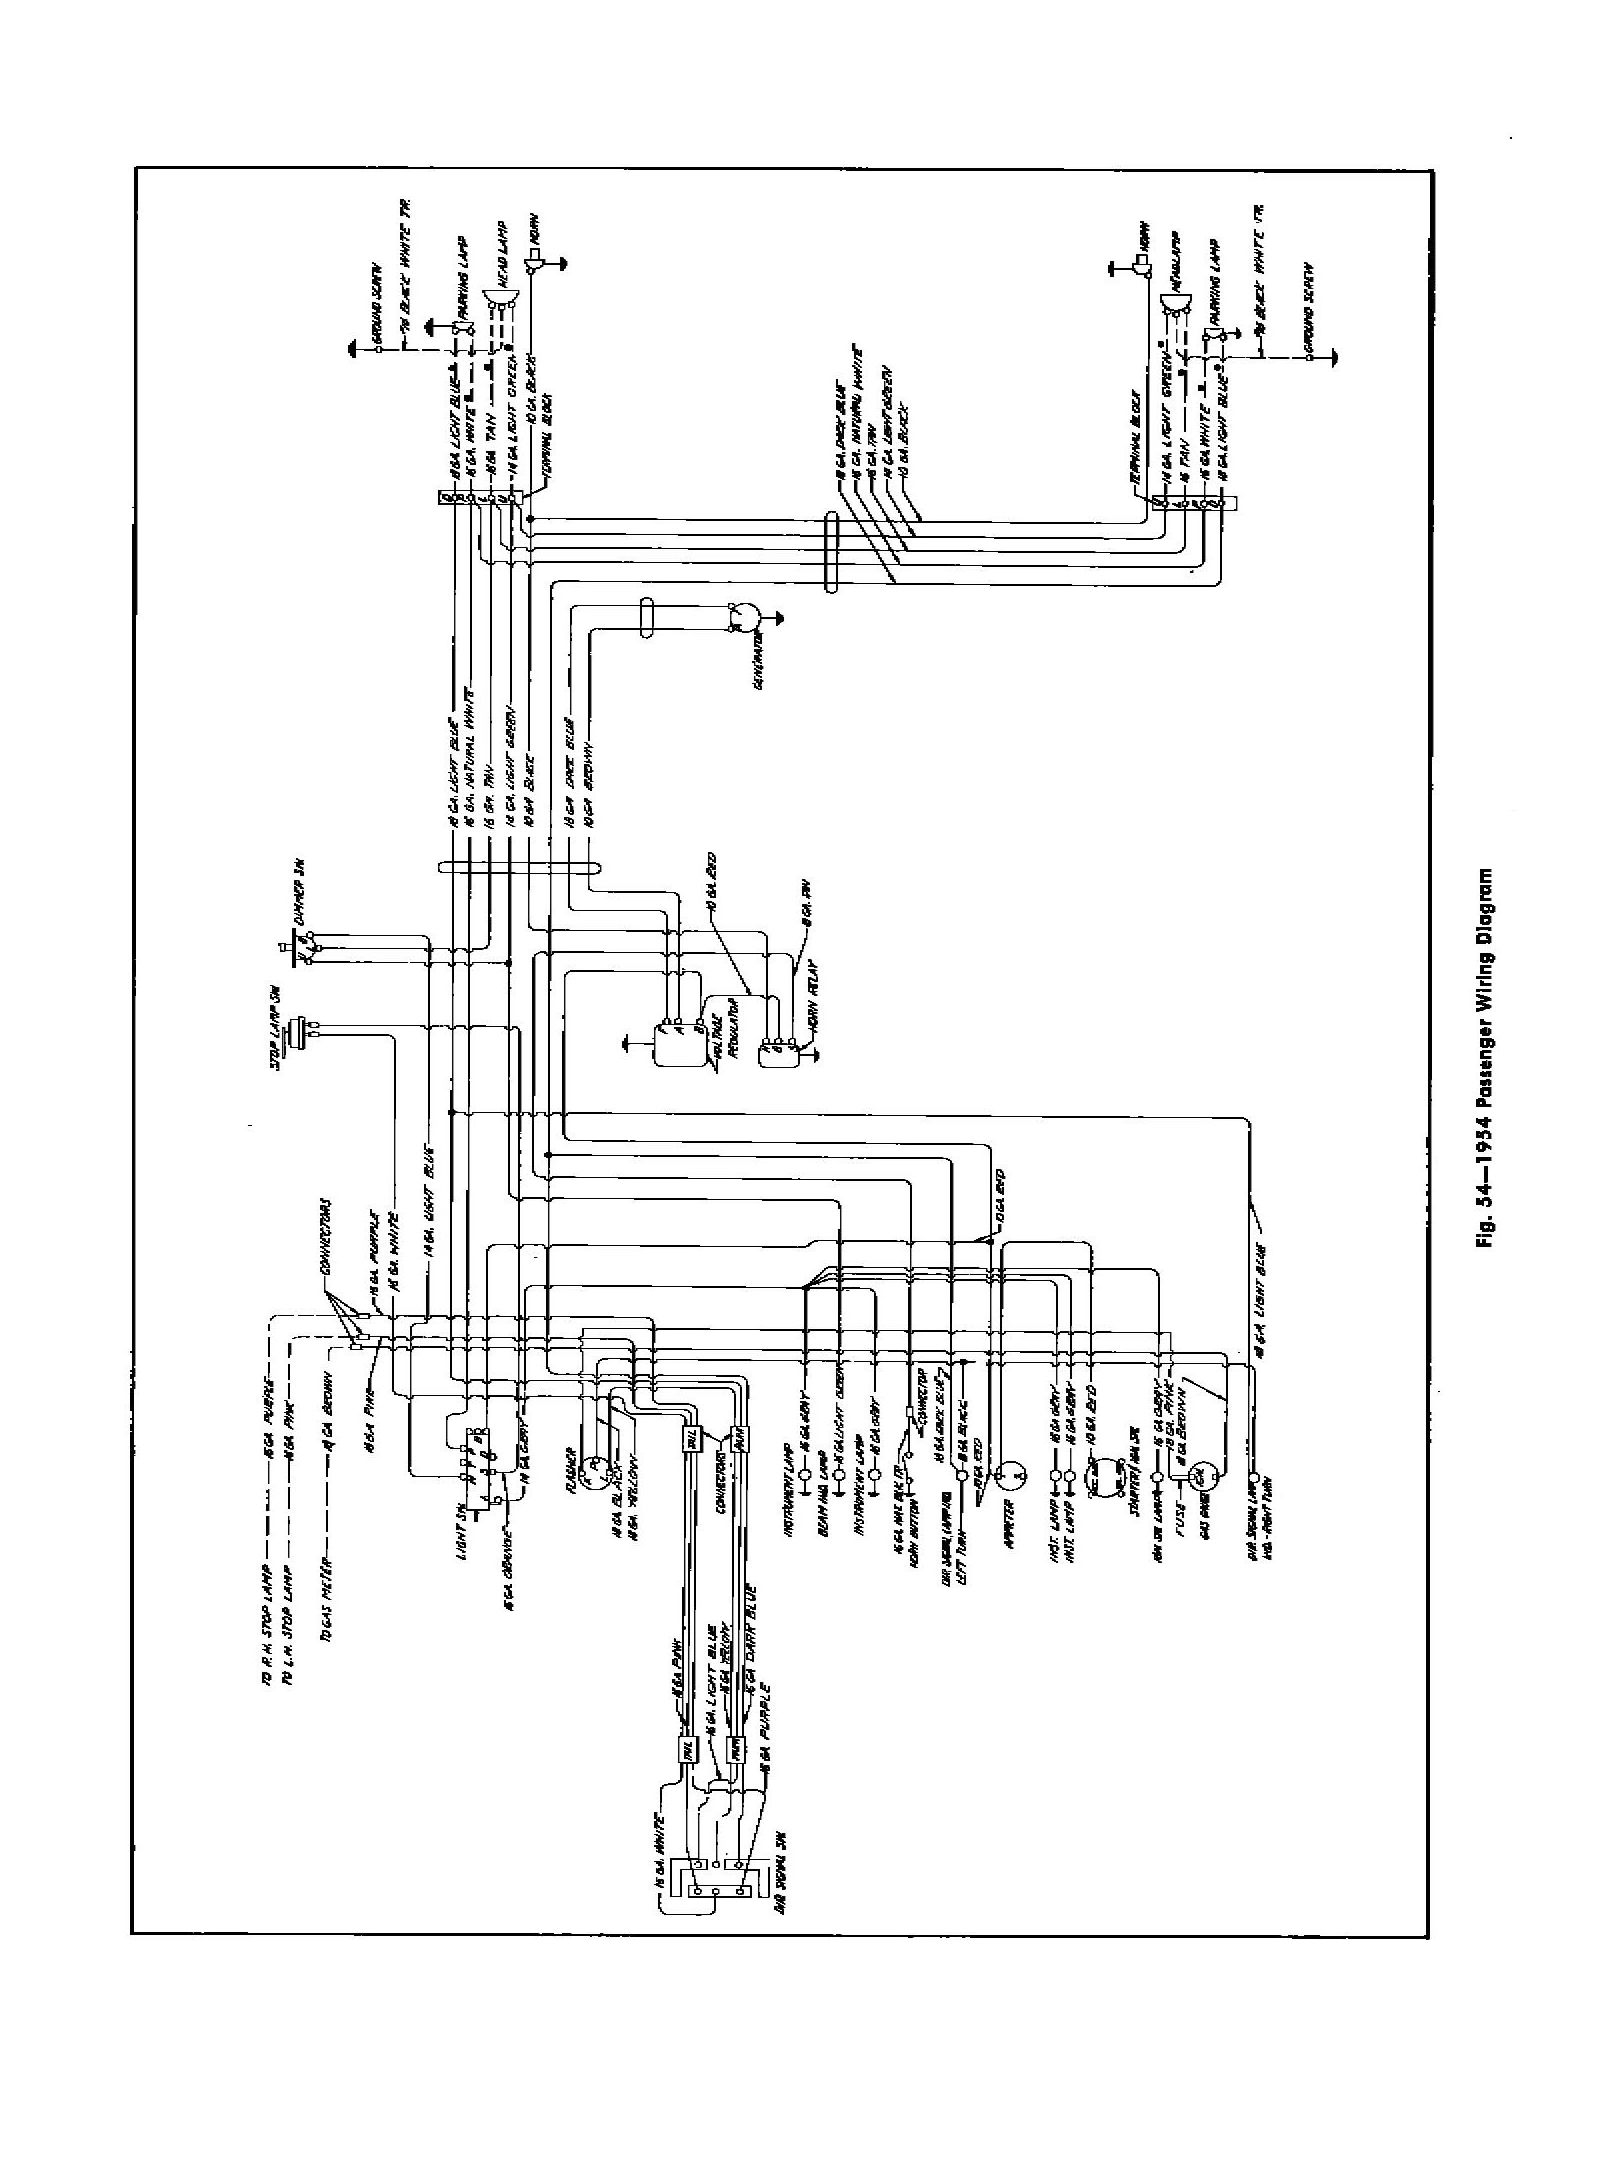 painless wiring diagram 55 chevy   32 wiring diagram